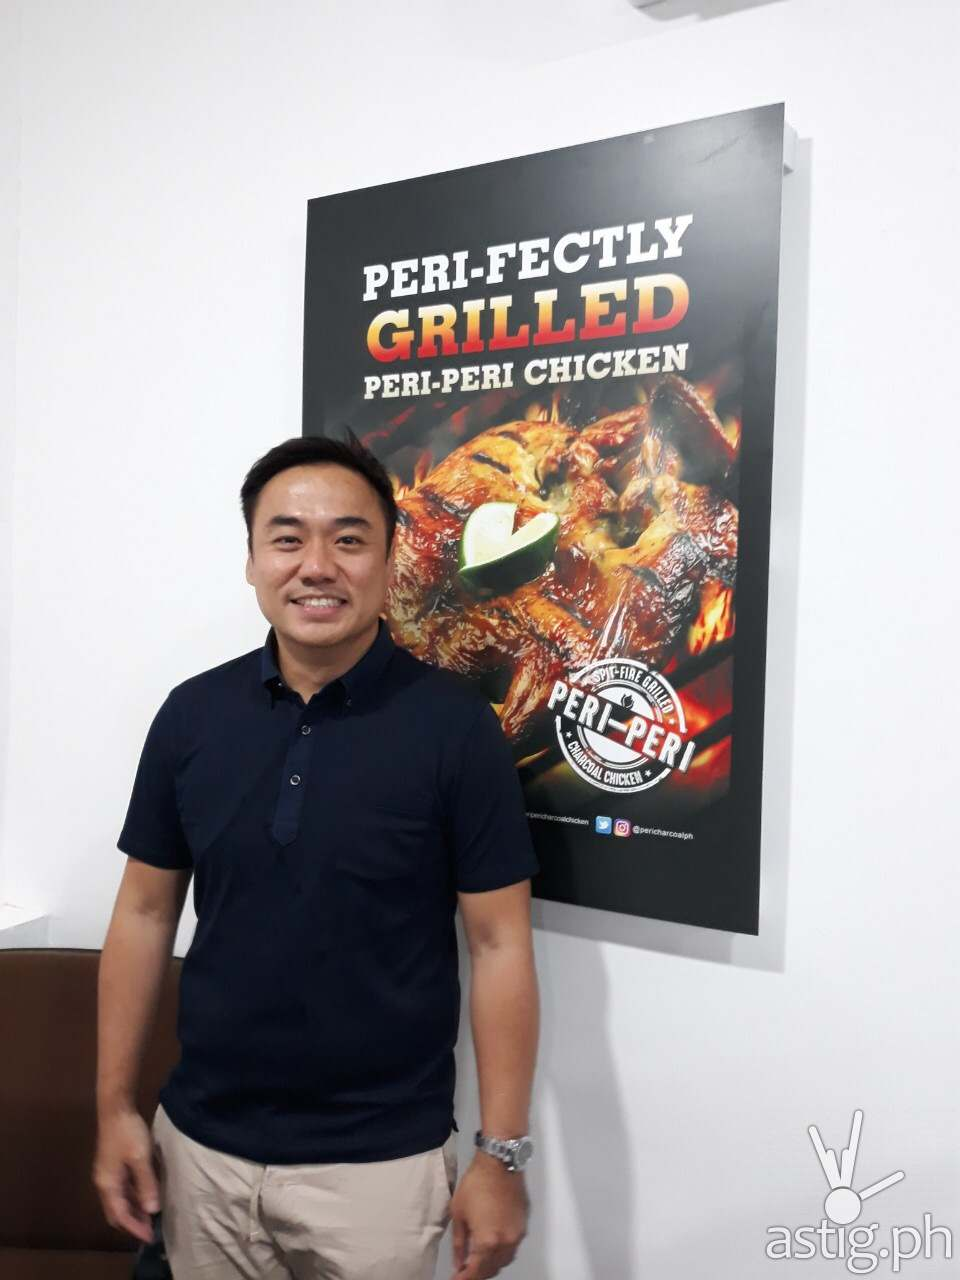 Local innovator and visionary Bryan Tiu has brought the many astounding flavours of Asia and the world here in the country through his IFoods Group, handling brands like Peri-Peri Charcoal Chicken and Sauce Bar.